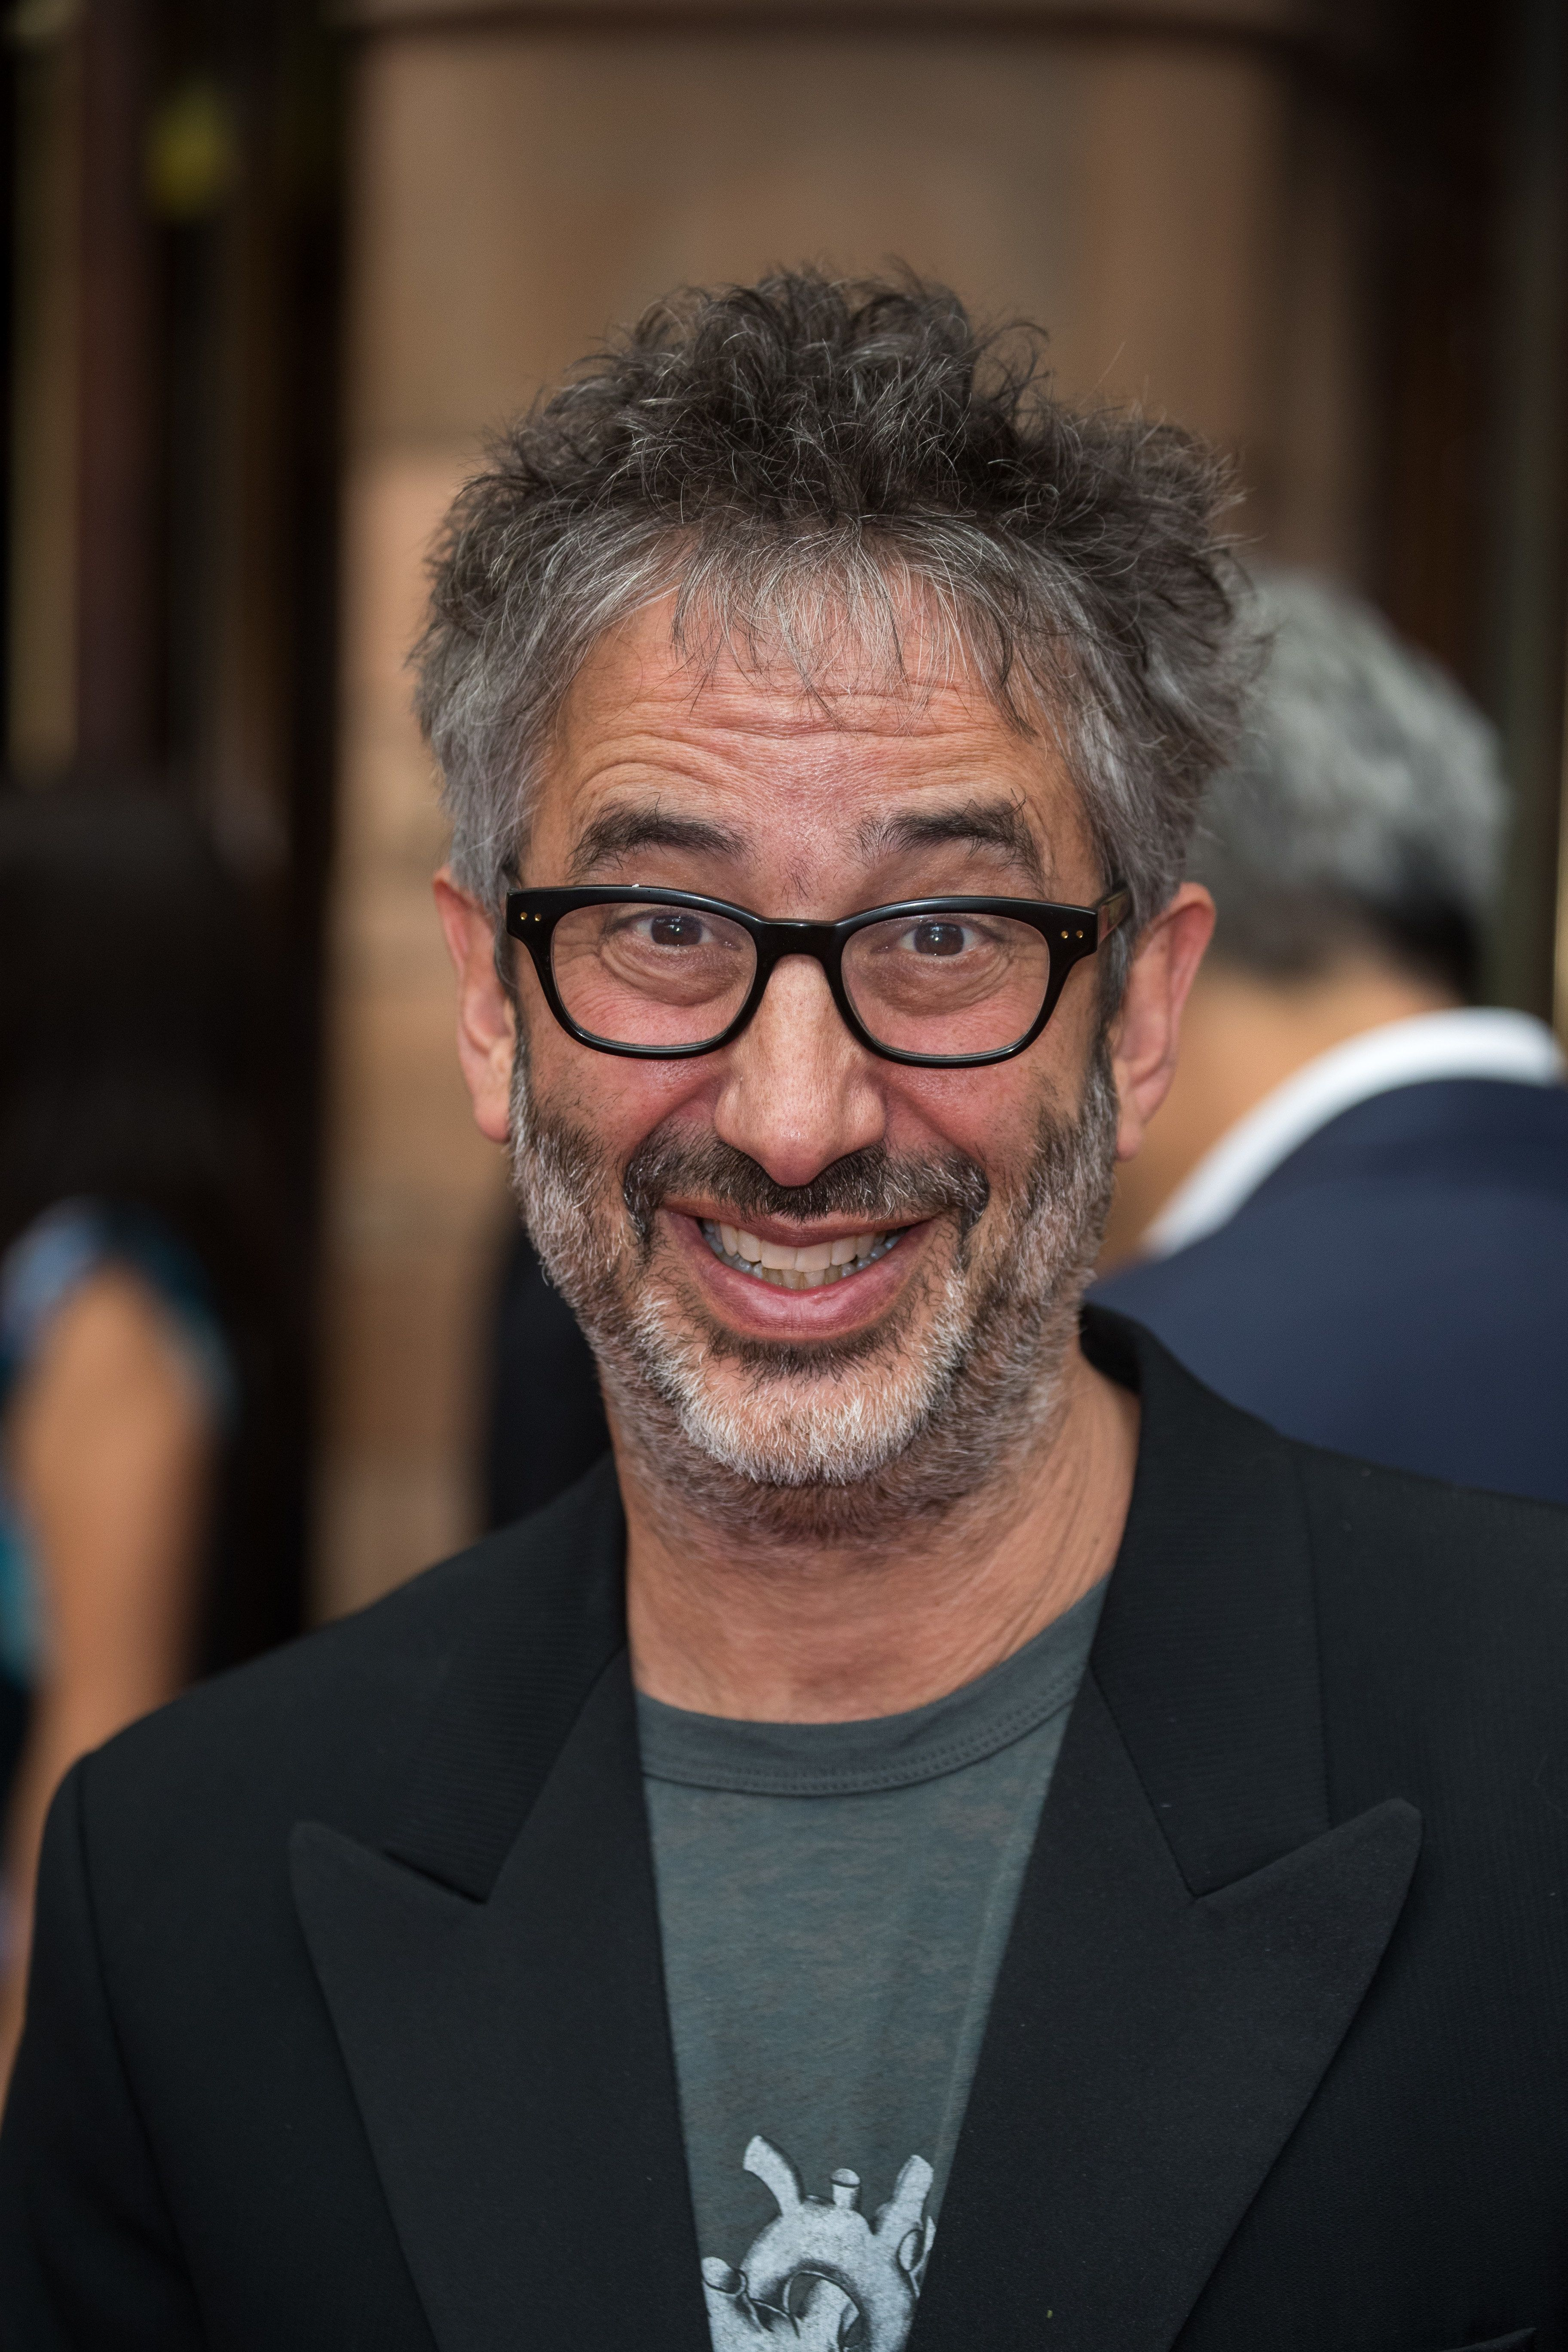 David Baddiel Explains How He 'Nearly Had A Threesome' With Two Spice